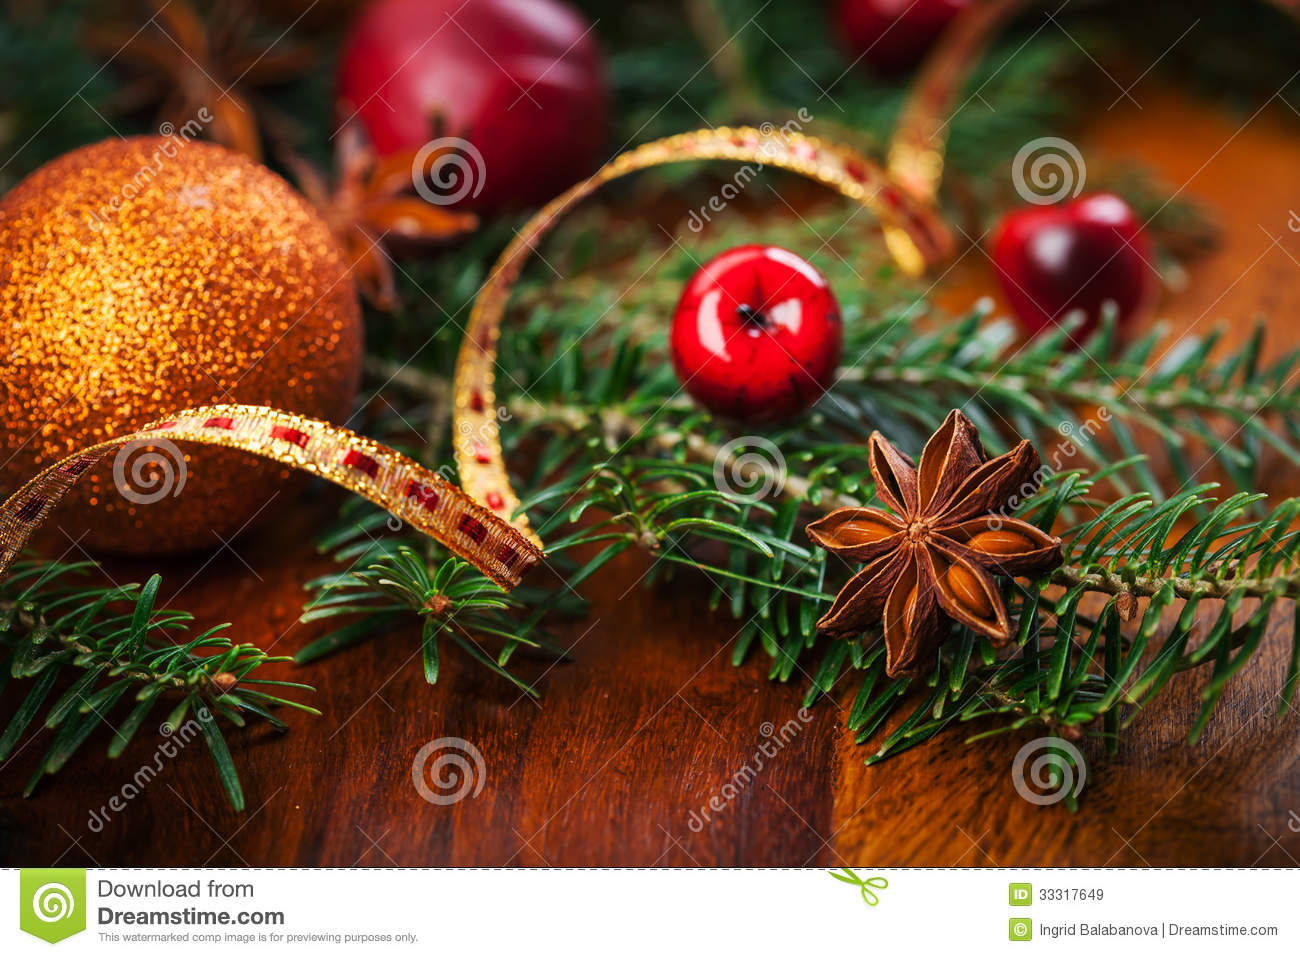 Why is holly a traditional christmas decoration - Royalty Free Stock Photo Download Traditional Christmas Decoration